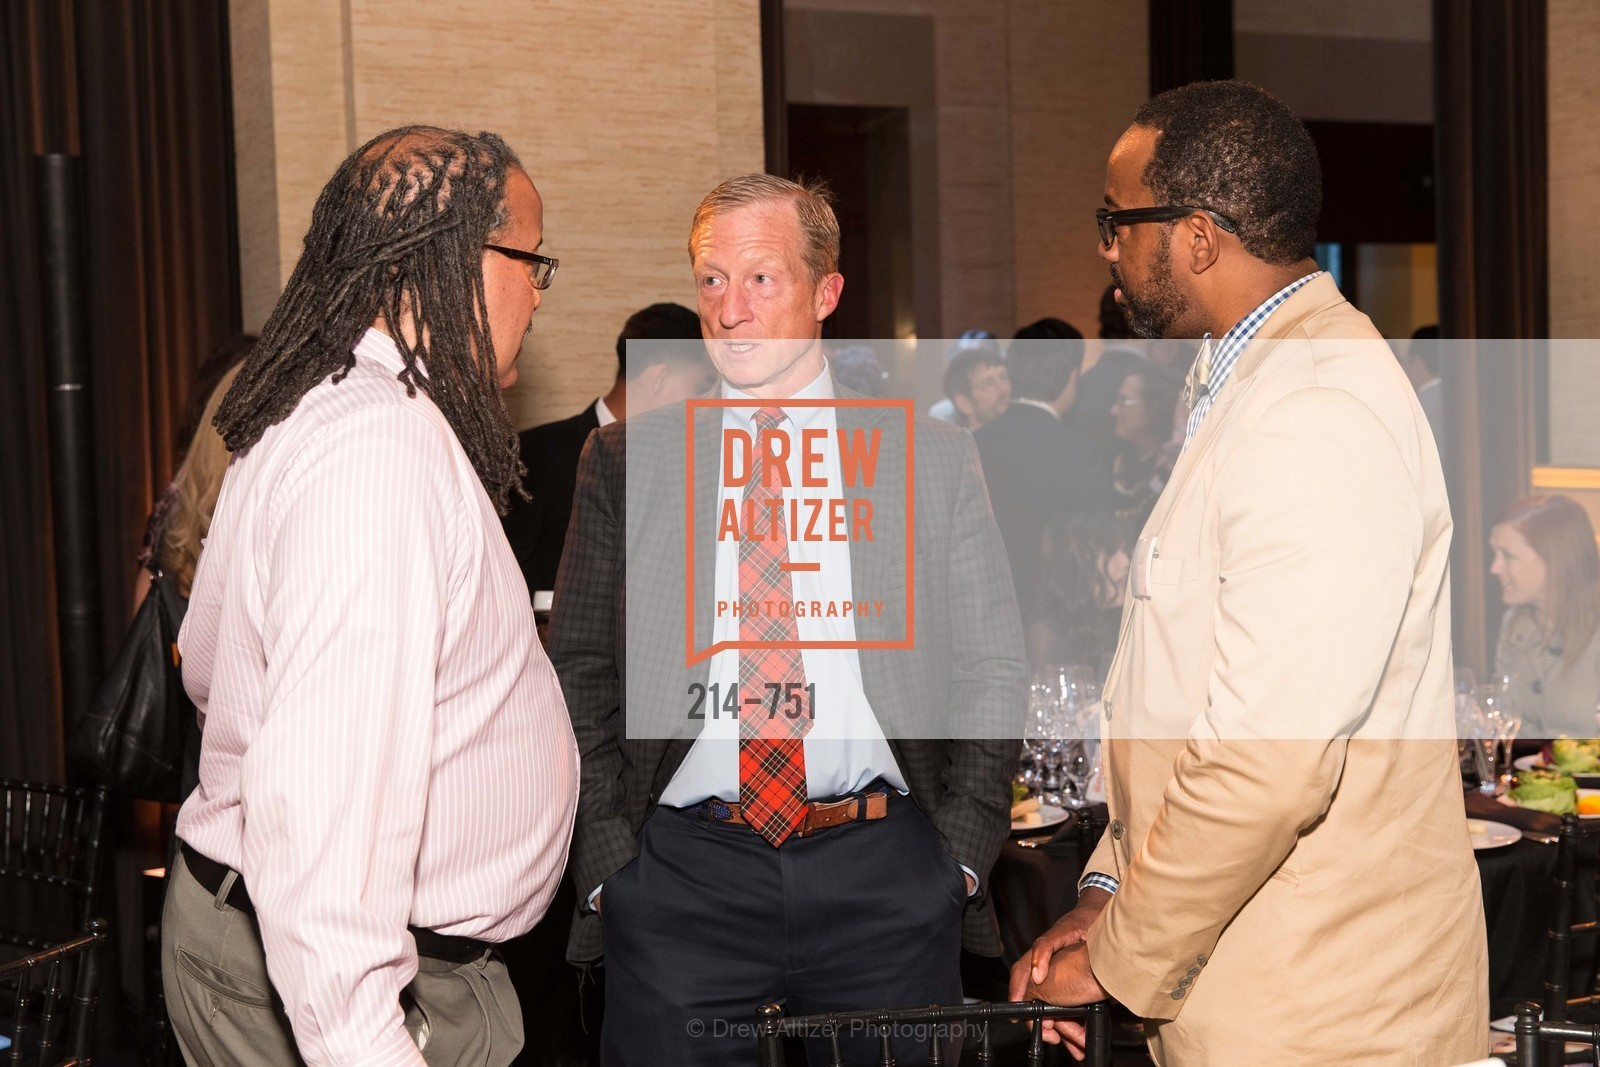 Ludovic Blain, Tom Steyer, Cecil D. Corbin-Mark, CENTER FOR ENVIRONMENTAL HEALTH (CEH) 2015 Gala, Bently Reserve, May 28th, 2015,Drew Altizer, Drew Altizer Photography, full-service agency, private events, San Francisco photographer, photographer california